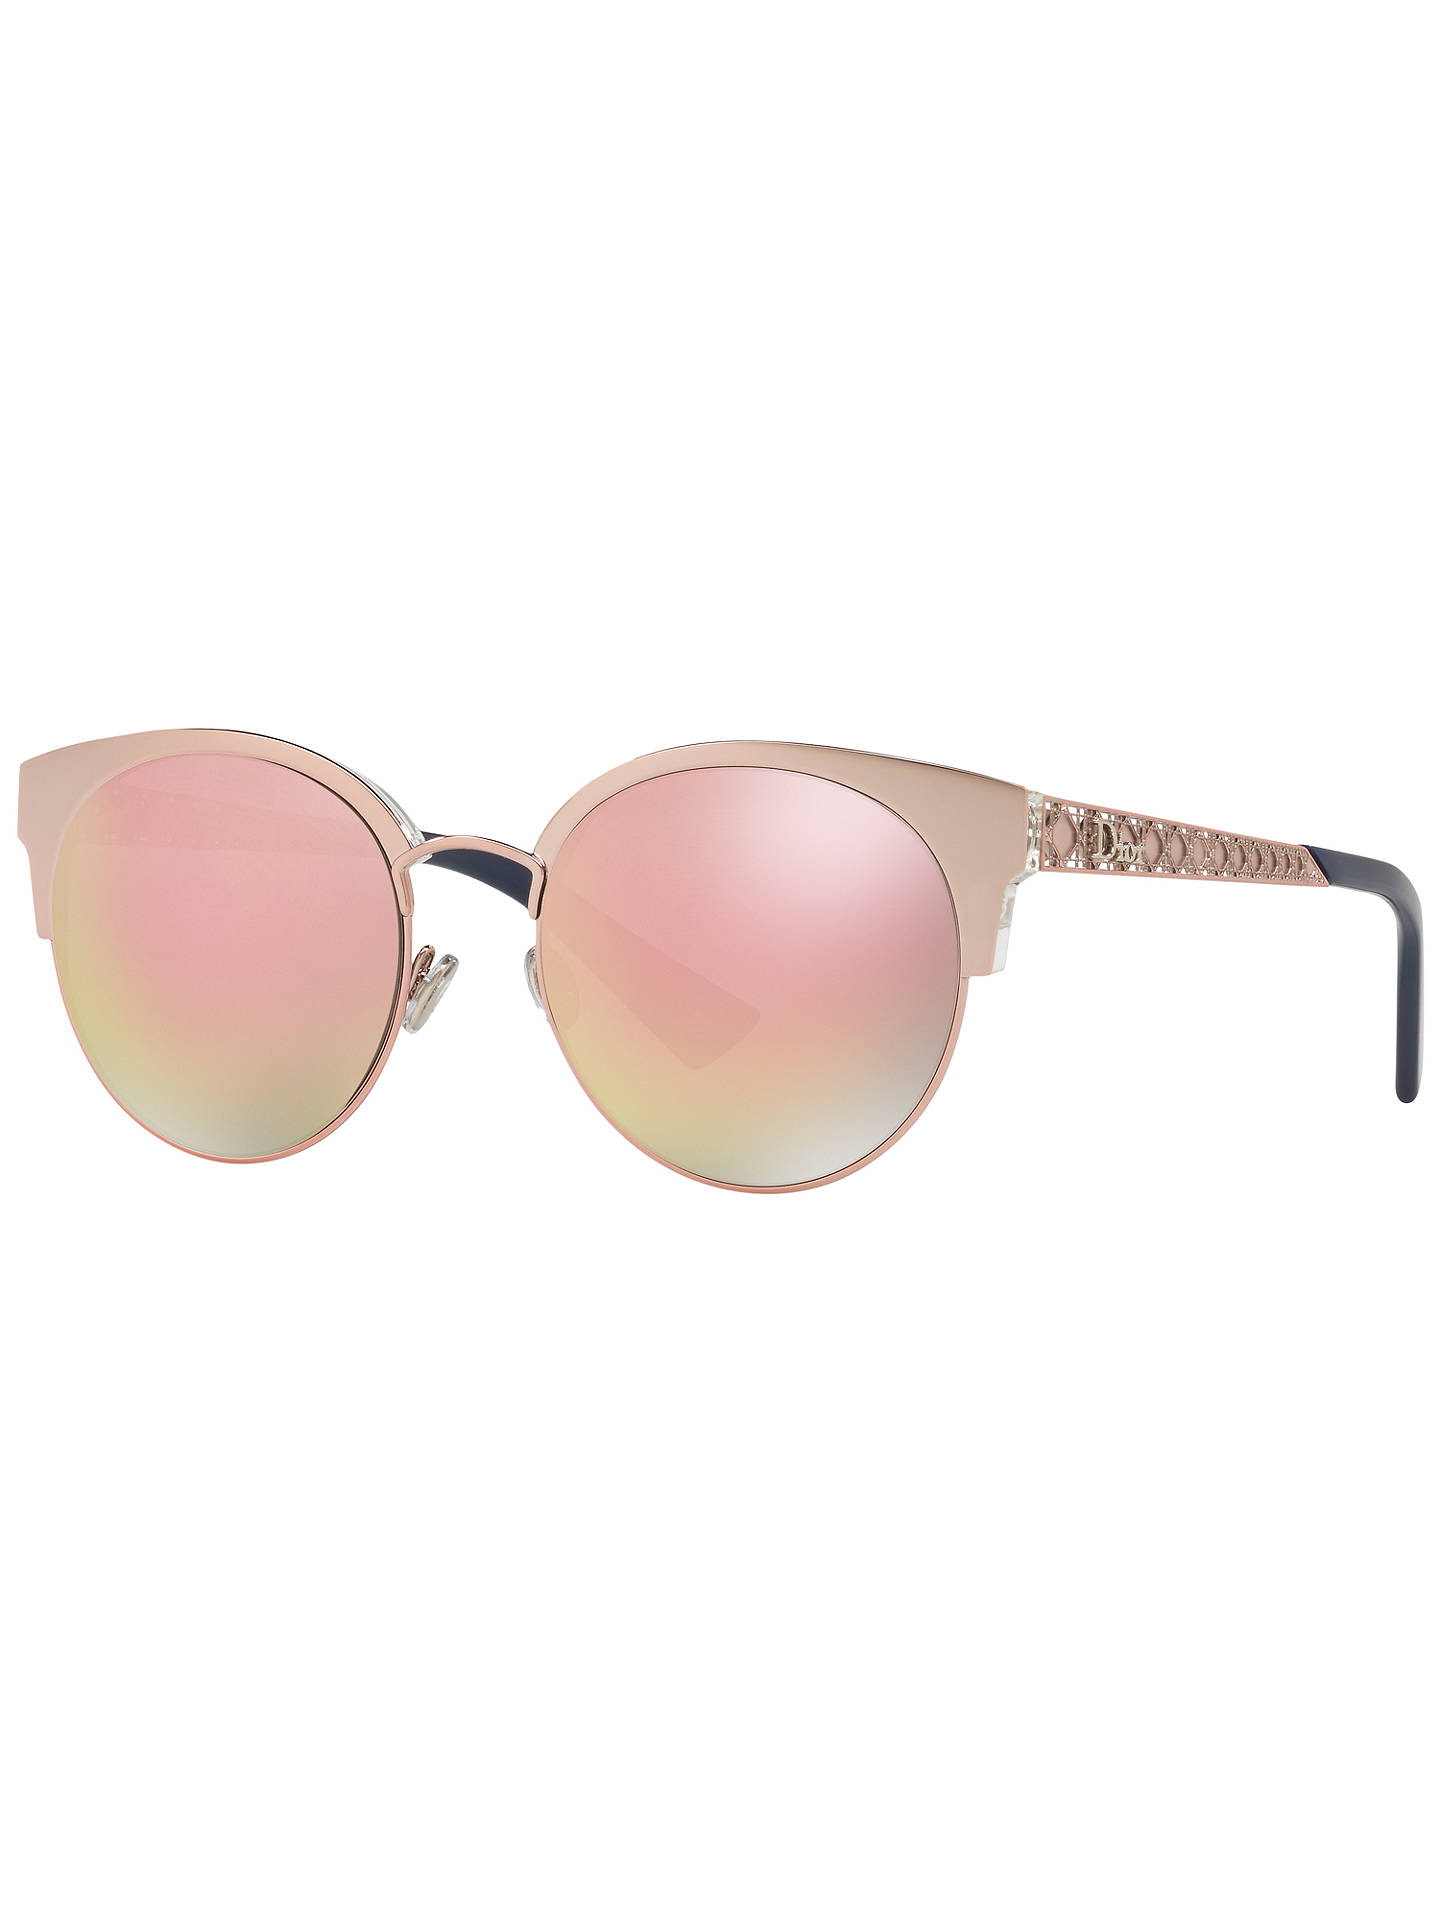 d8fb2bbd09e1 Dior DioramaMini Cat s Eye Sunglasses at John Lewis   Partners